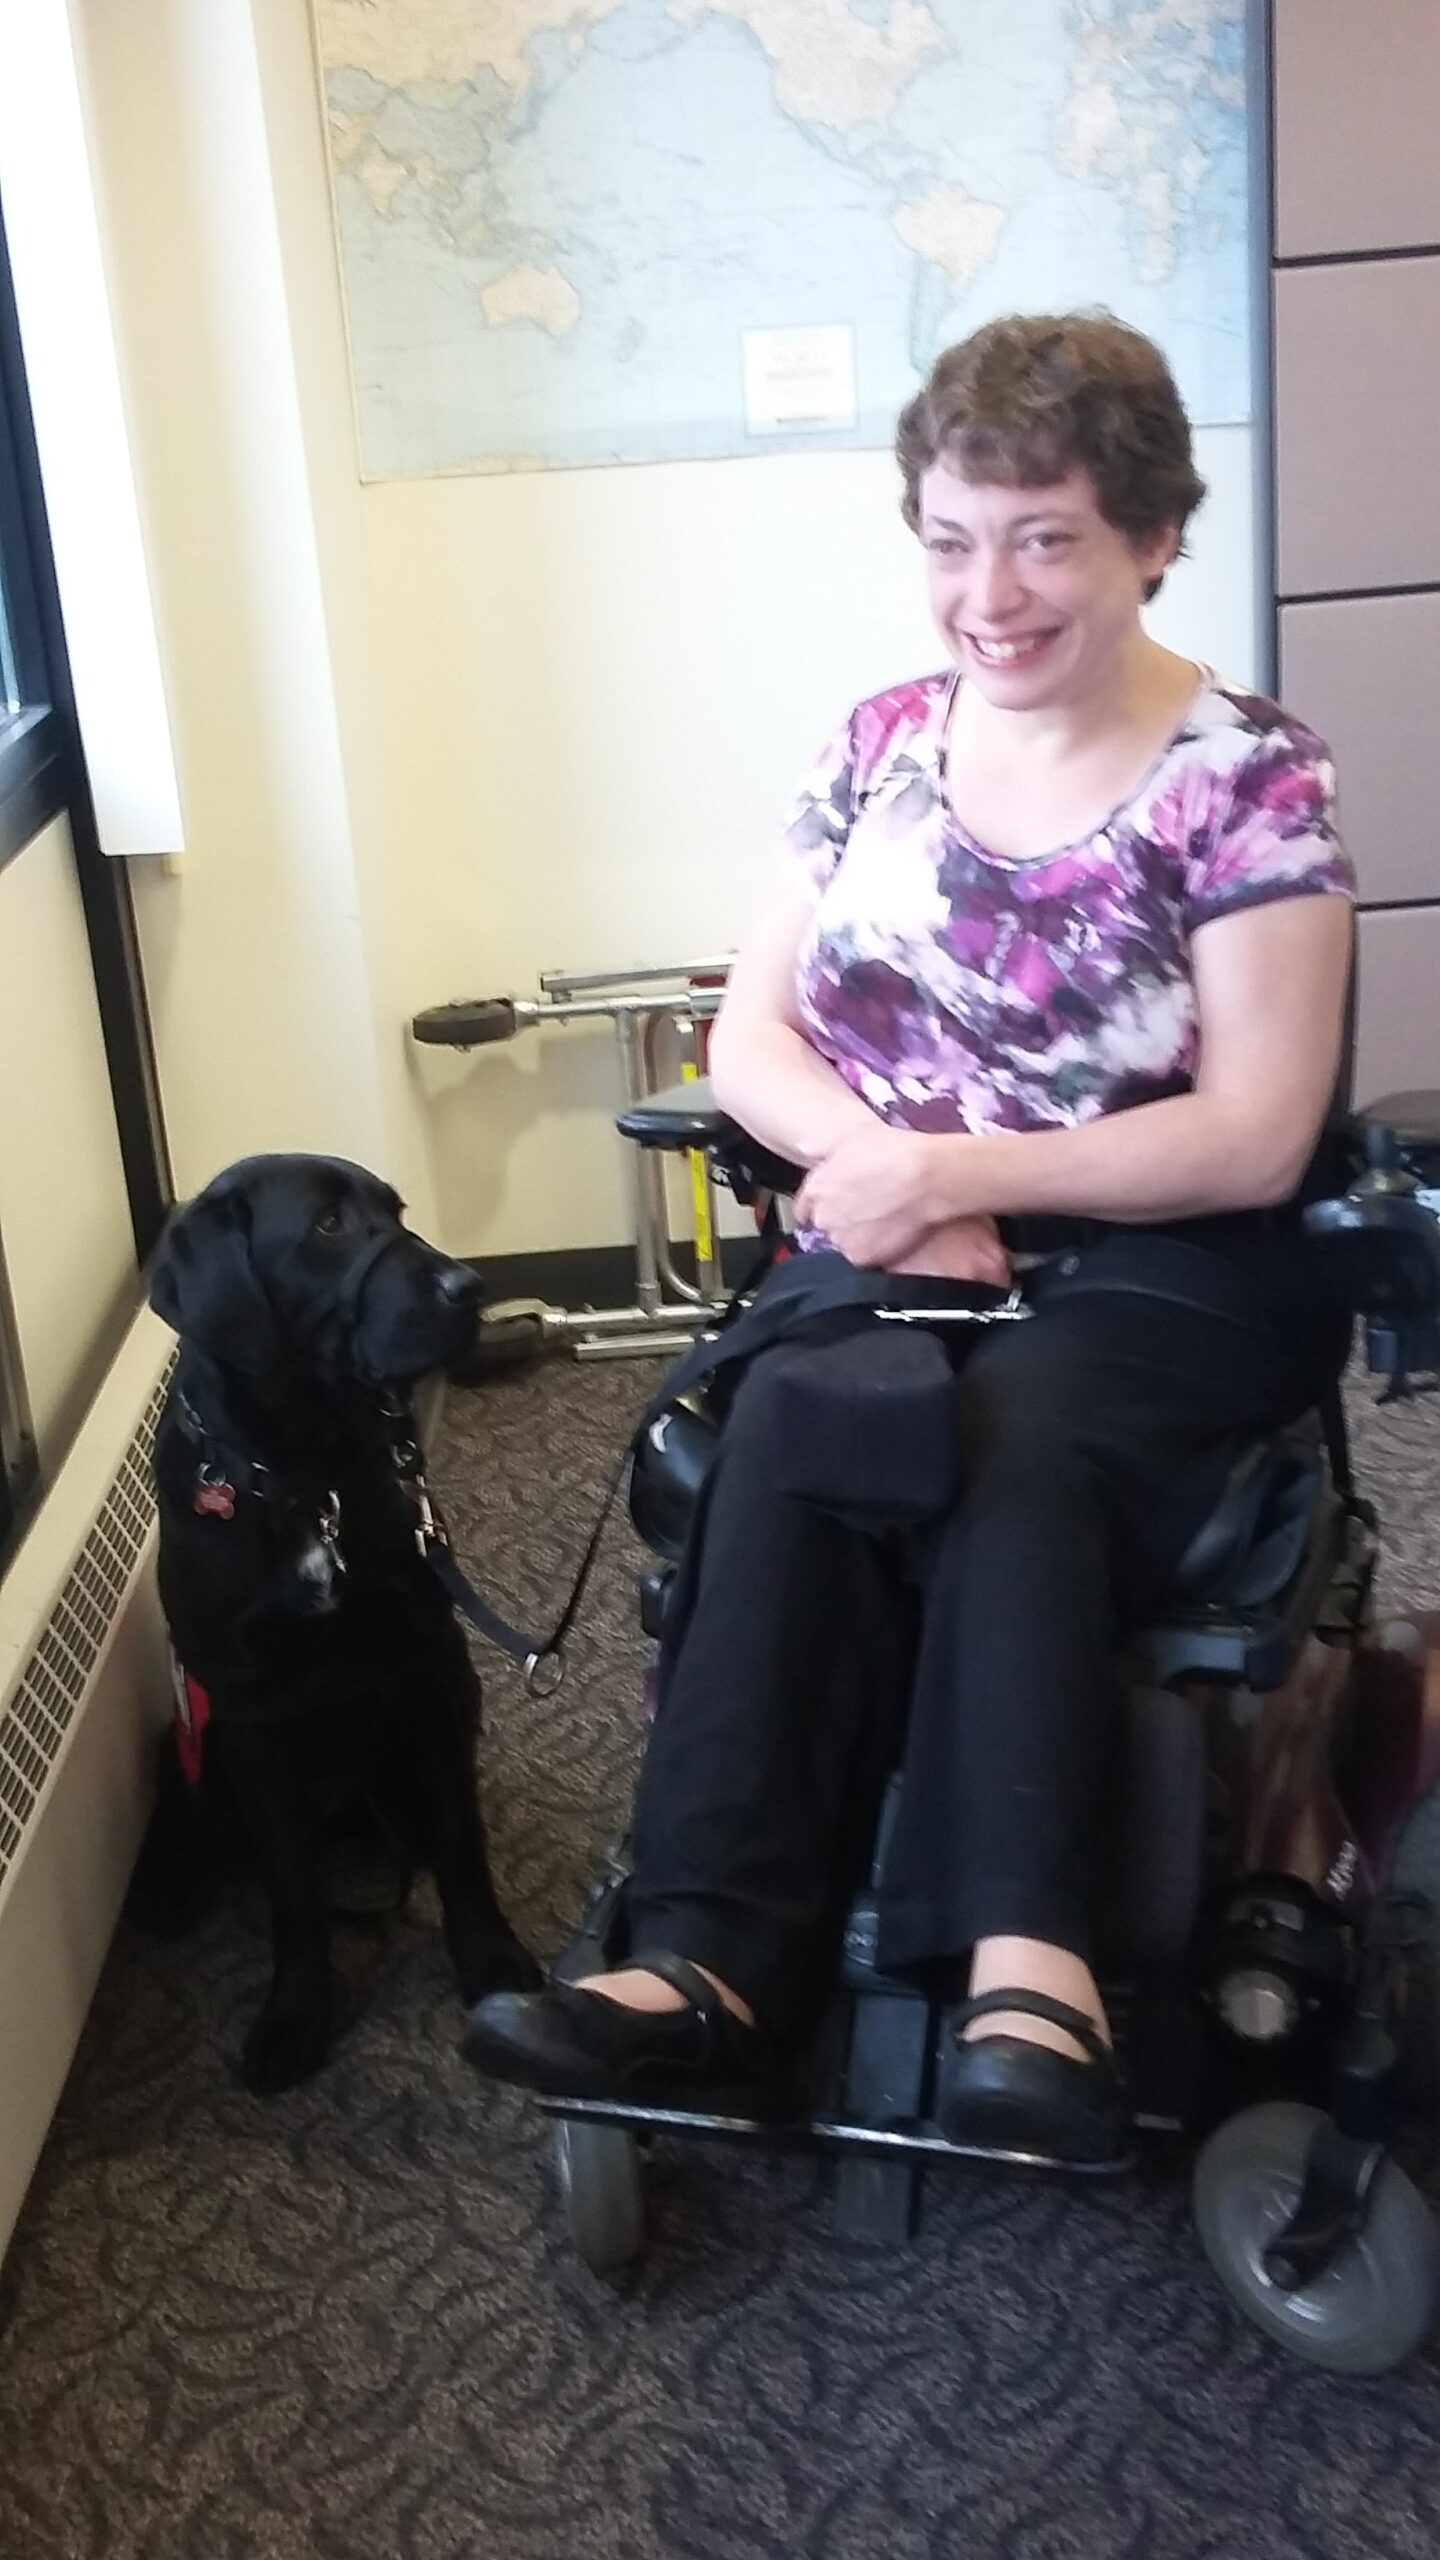 Tracy is smiling next to her mobility assist dog, Gidget.